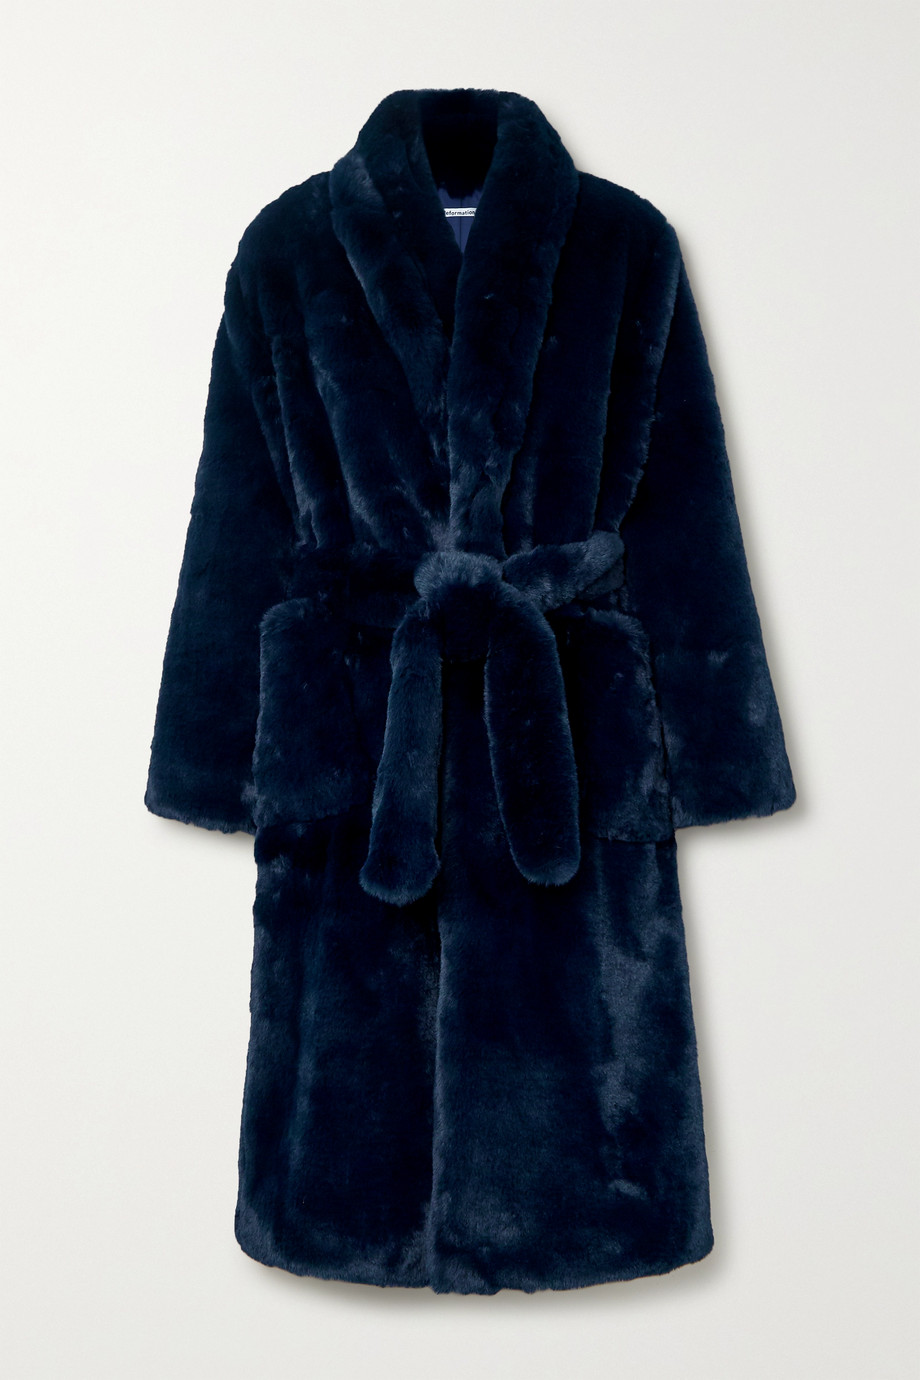 Reformation Hudson belted faux fur coat